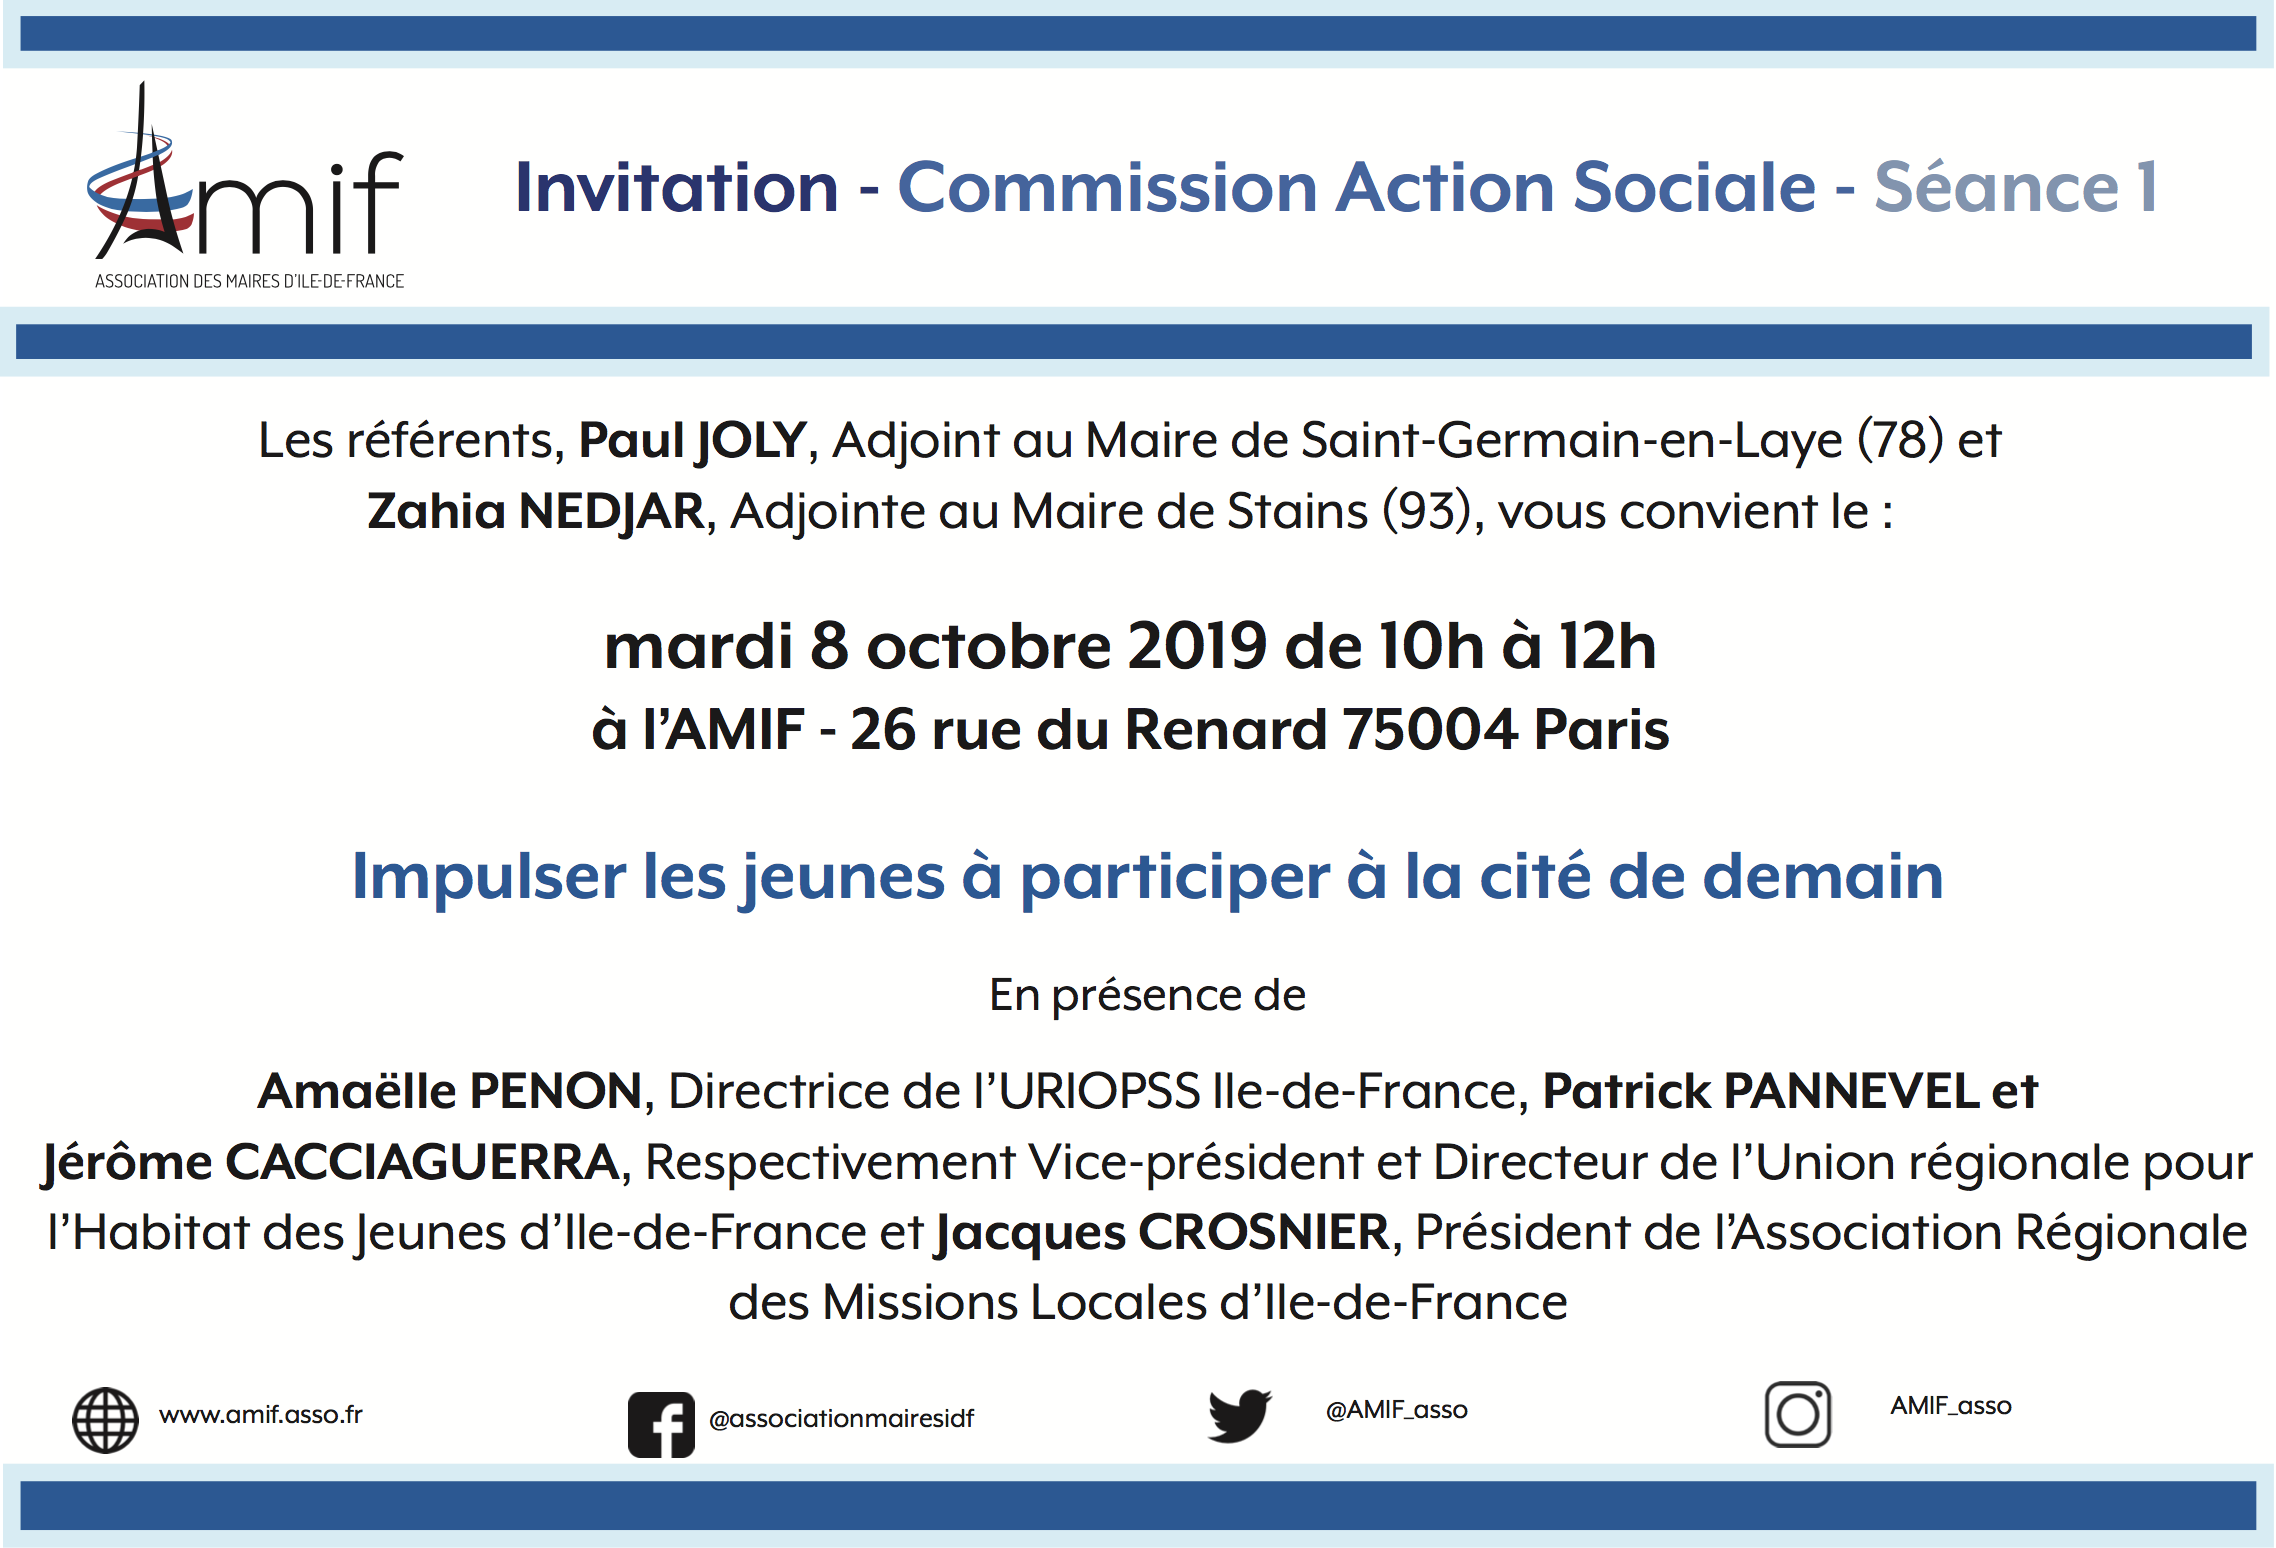 CommissionActionSocialeSeance18octobre2019v1